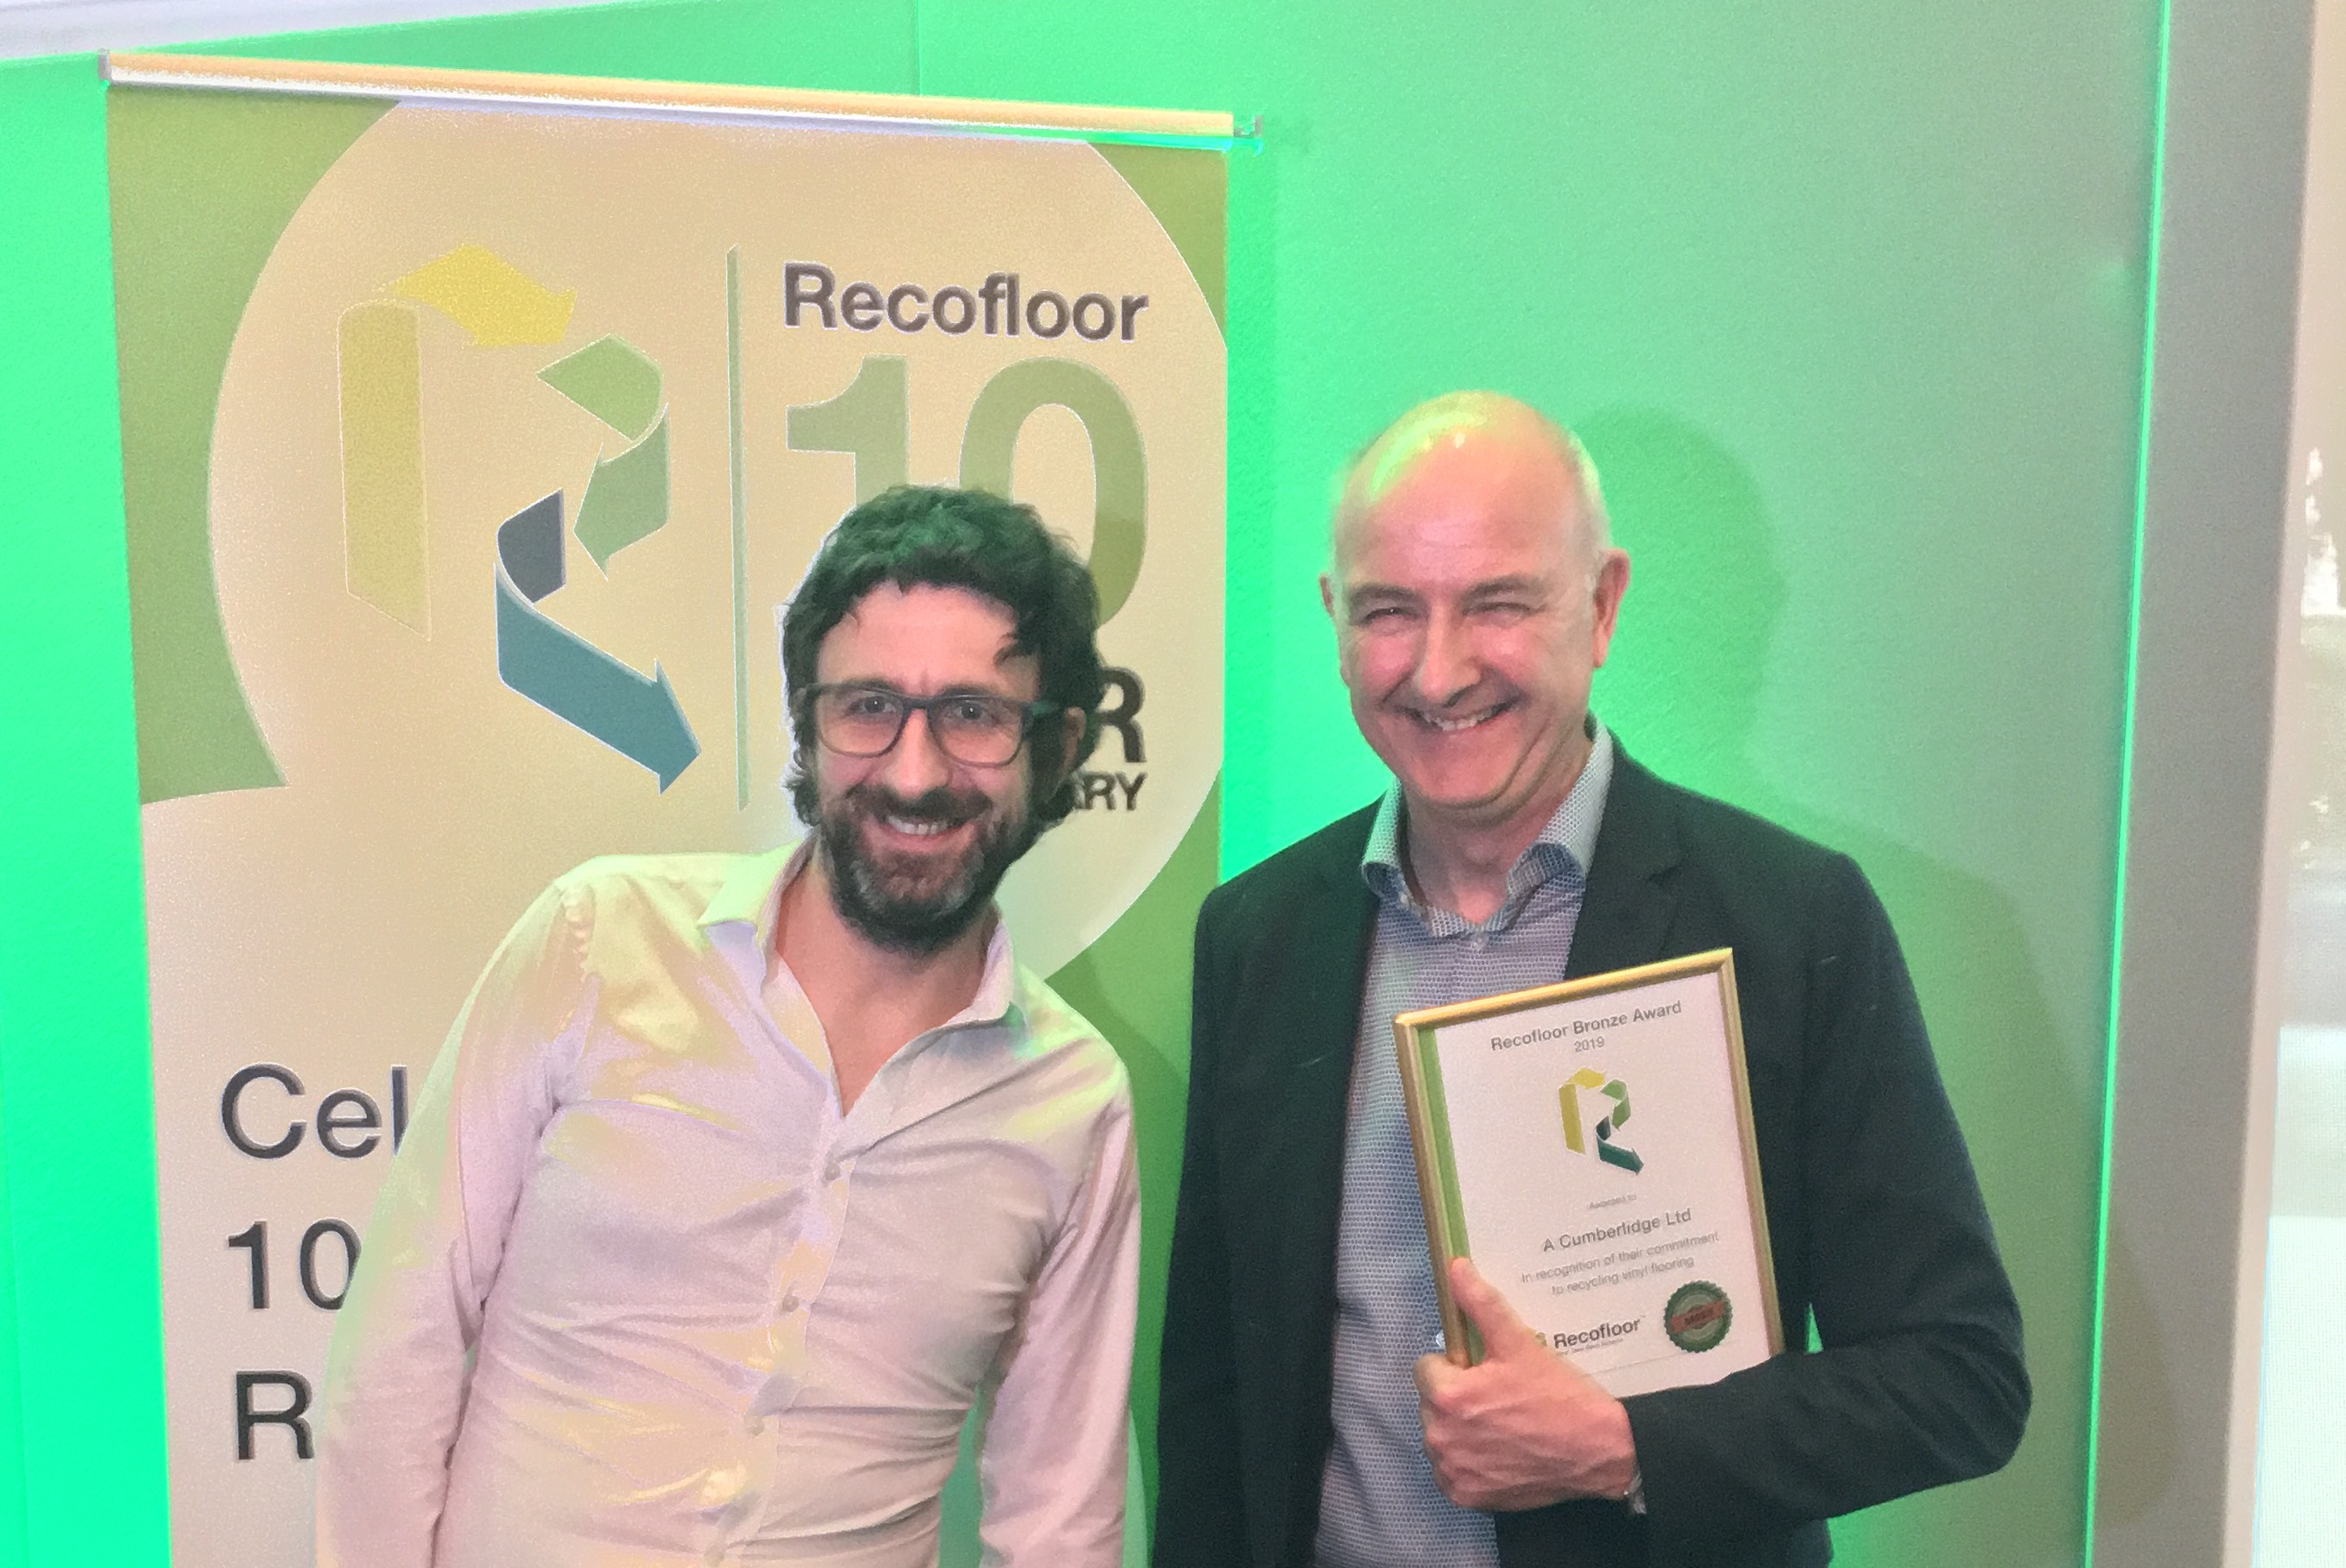 A Cumberlidge at the Recofloor Awards